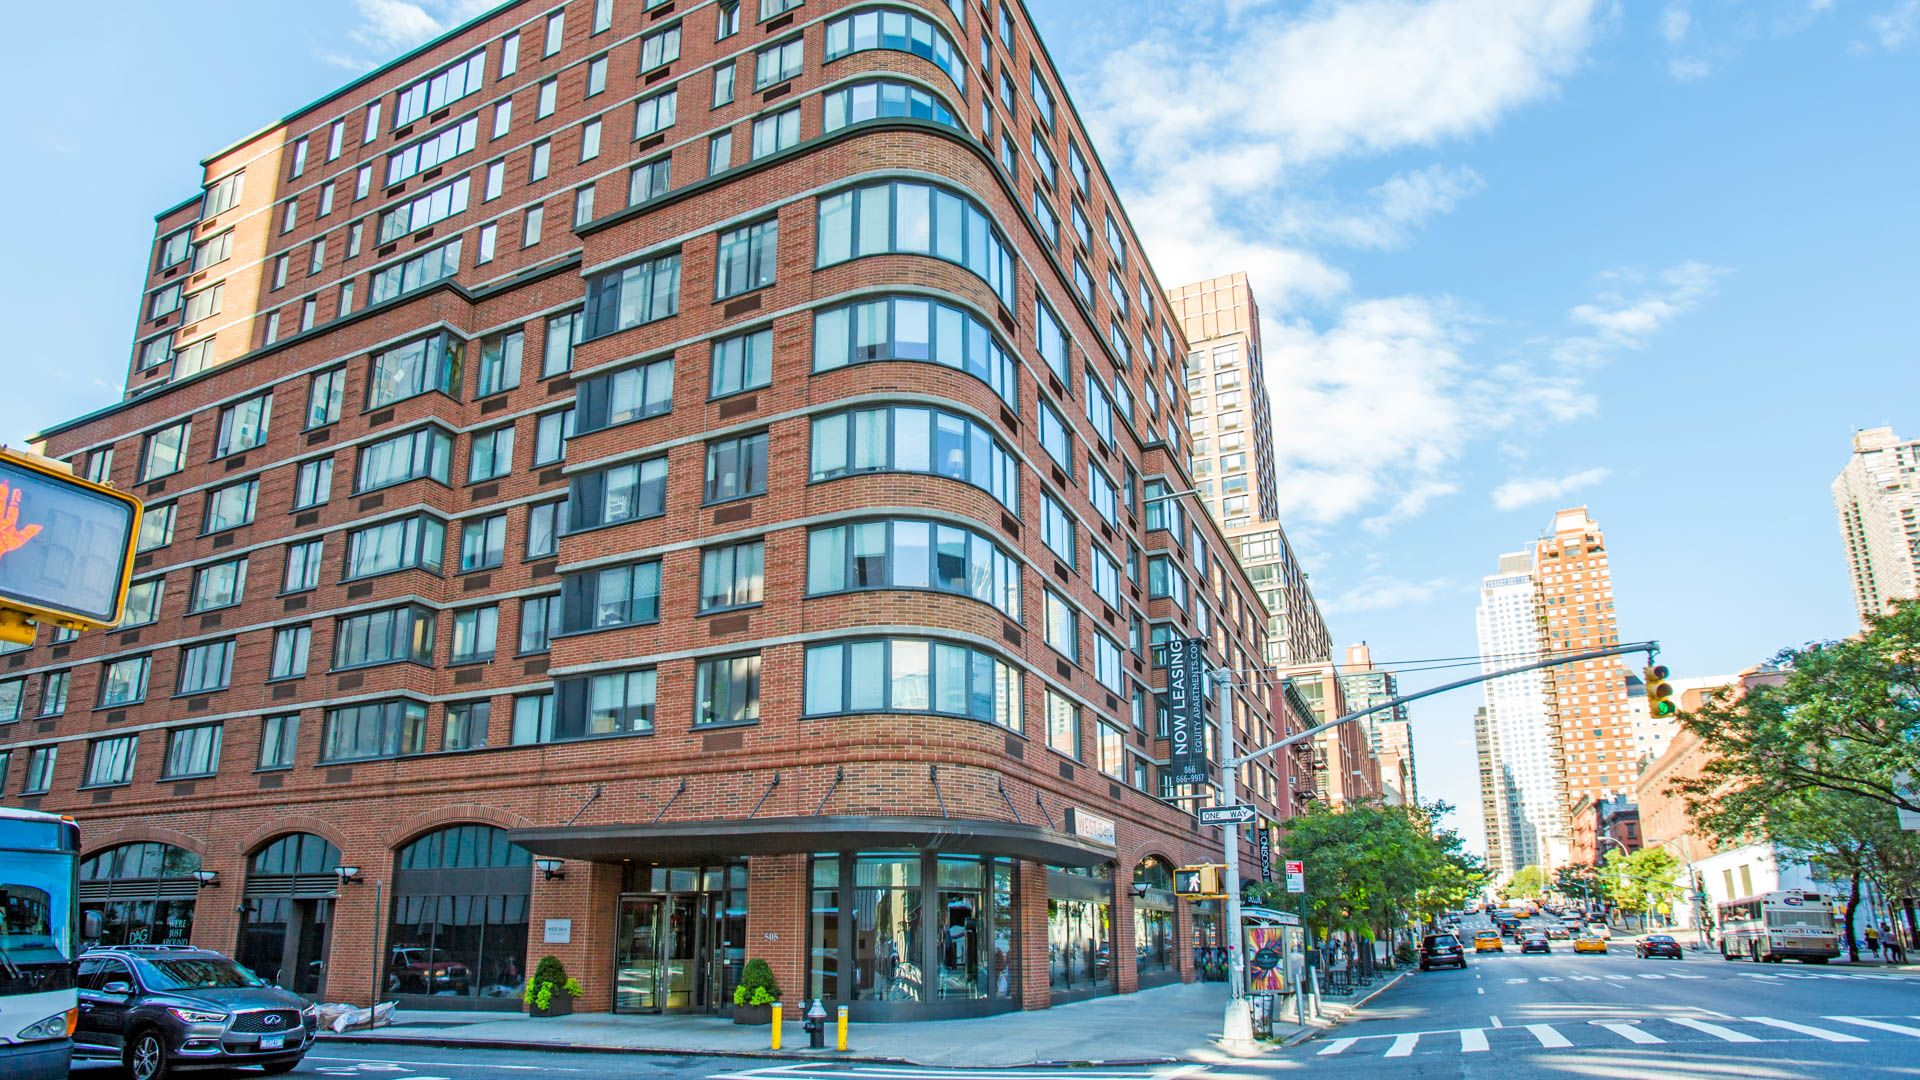 West 54th Apartments in Midtown 505 West 54th Street